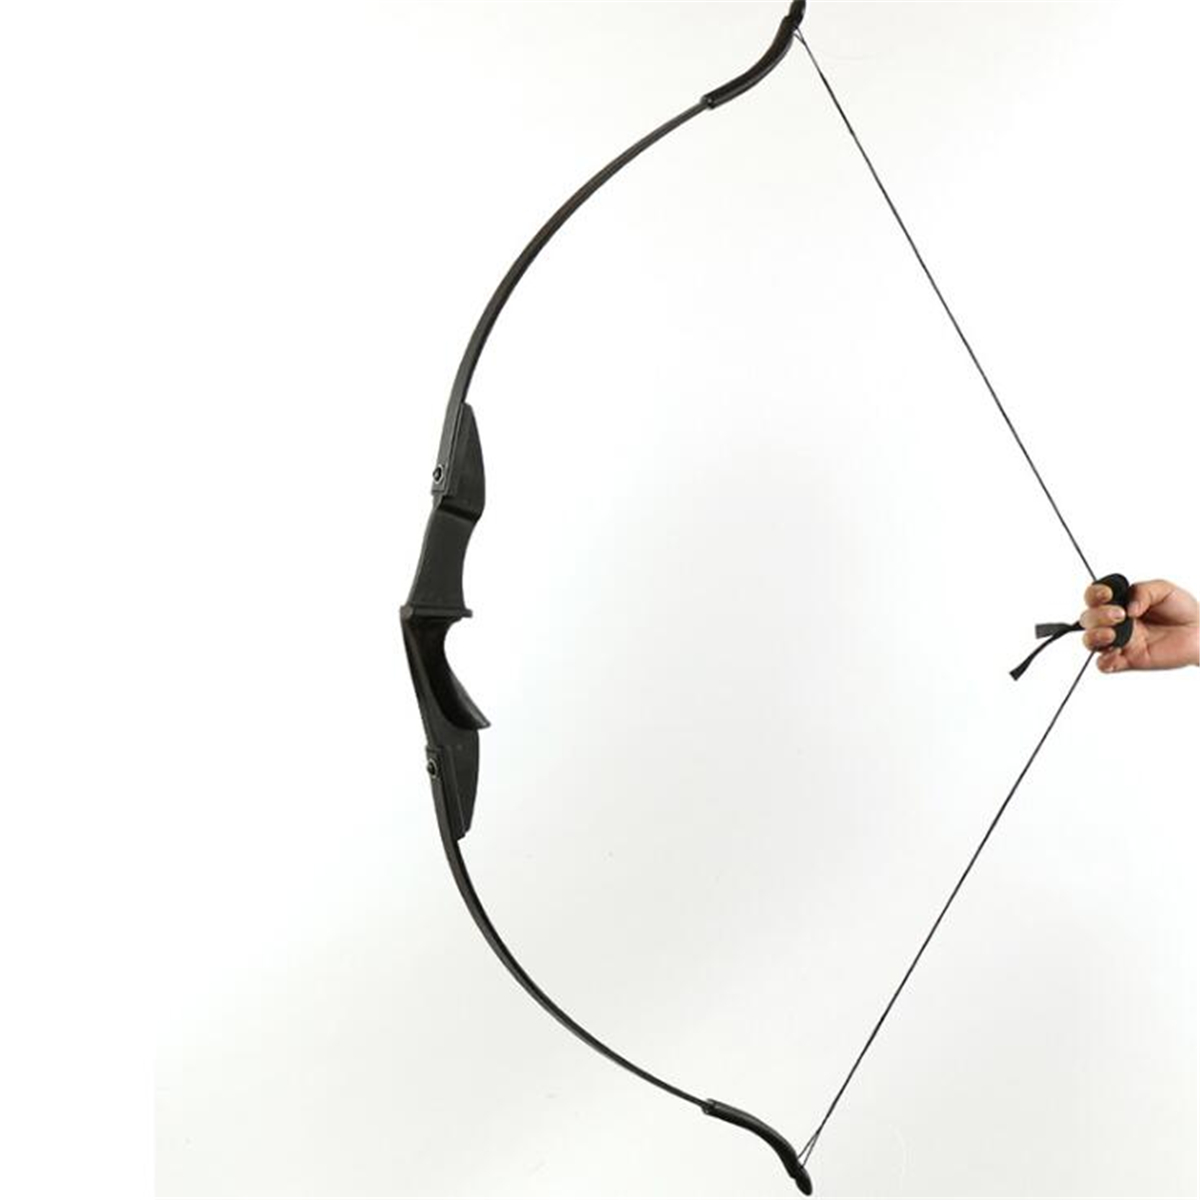 30lbs 40lbs Archery Bow Double Stand Bow Left Right Hand Split Bow With Bow Handle Bowstrings Bow Slices For Hunting Shooting Training